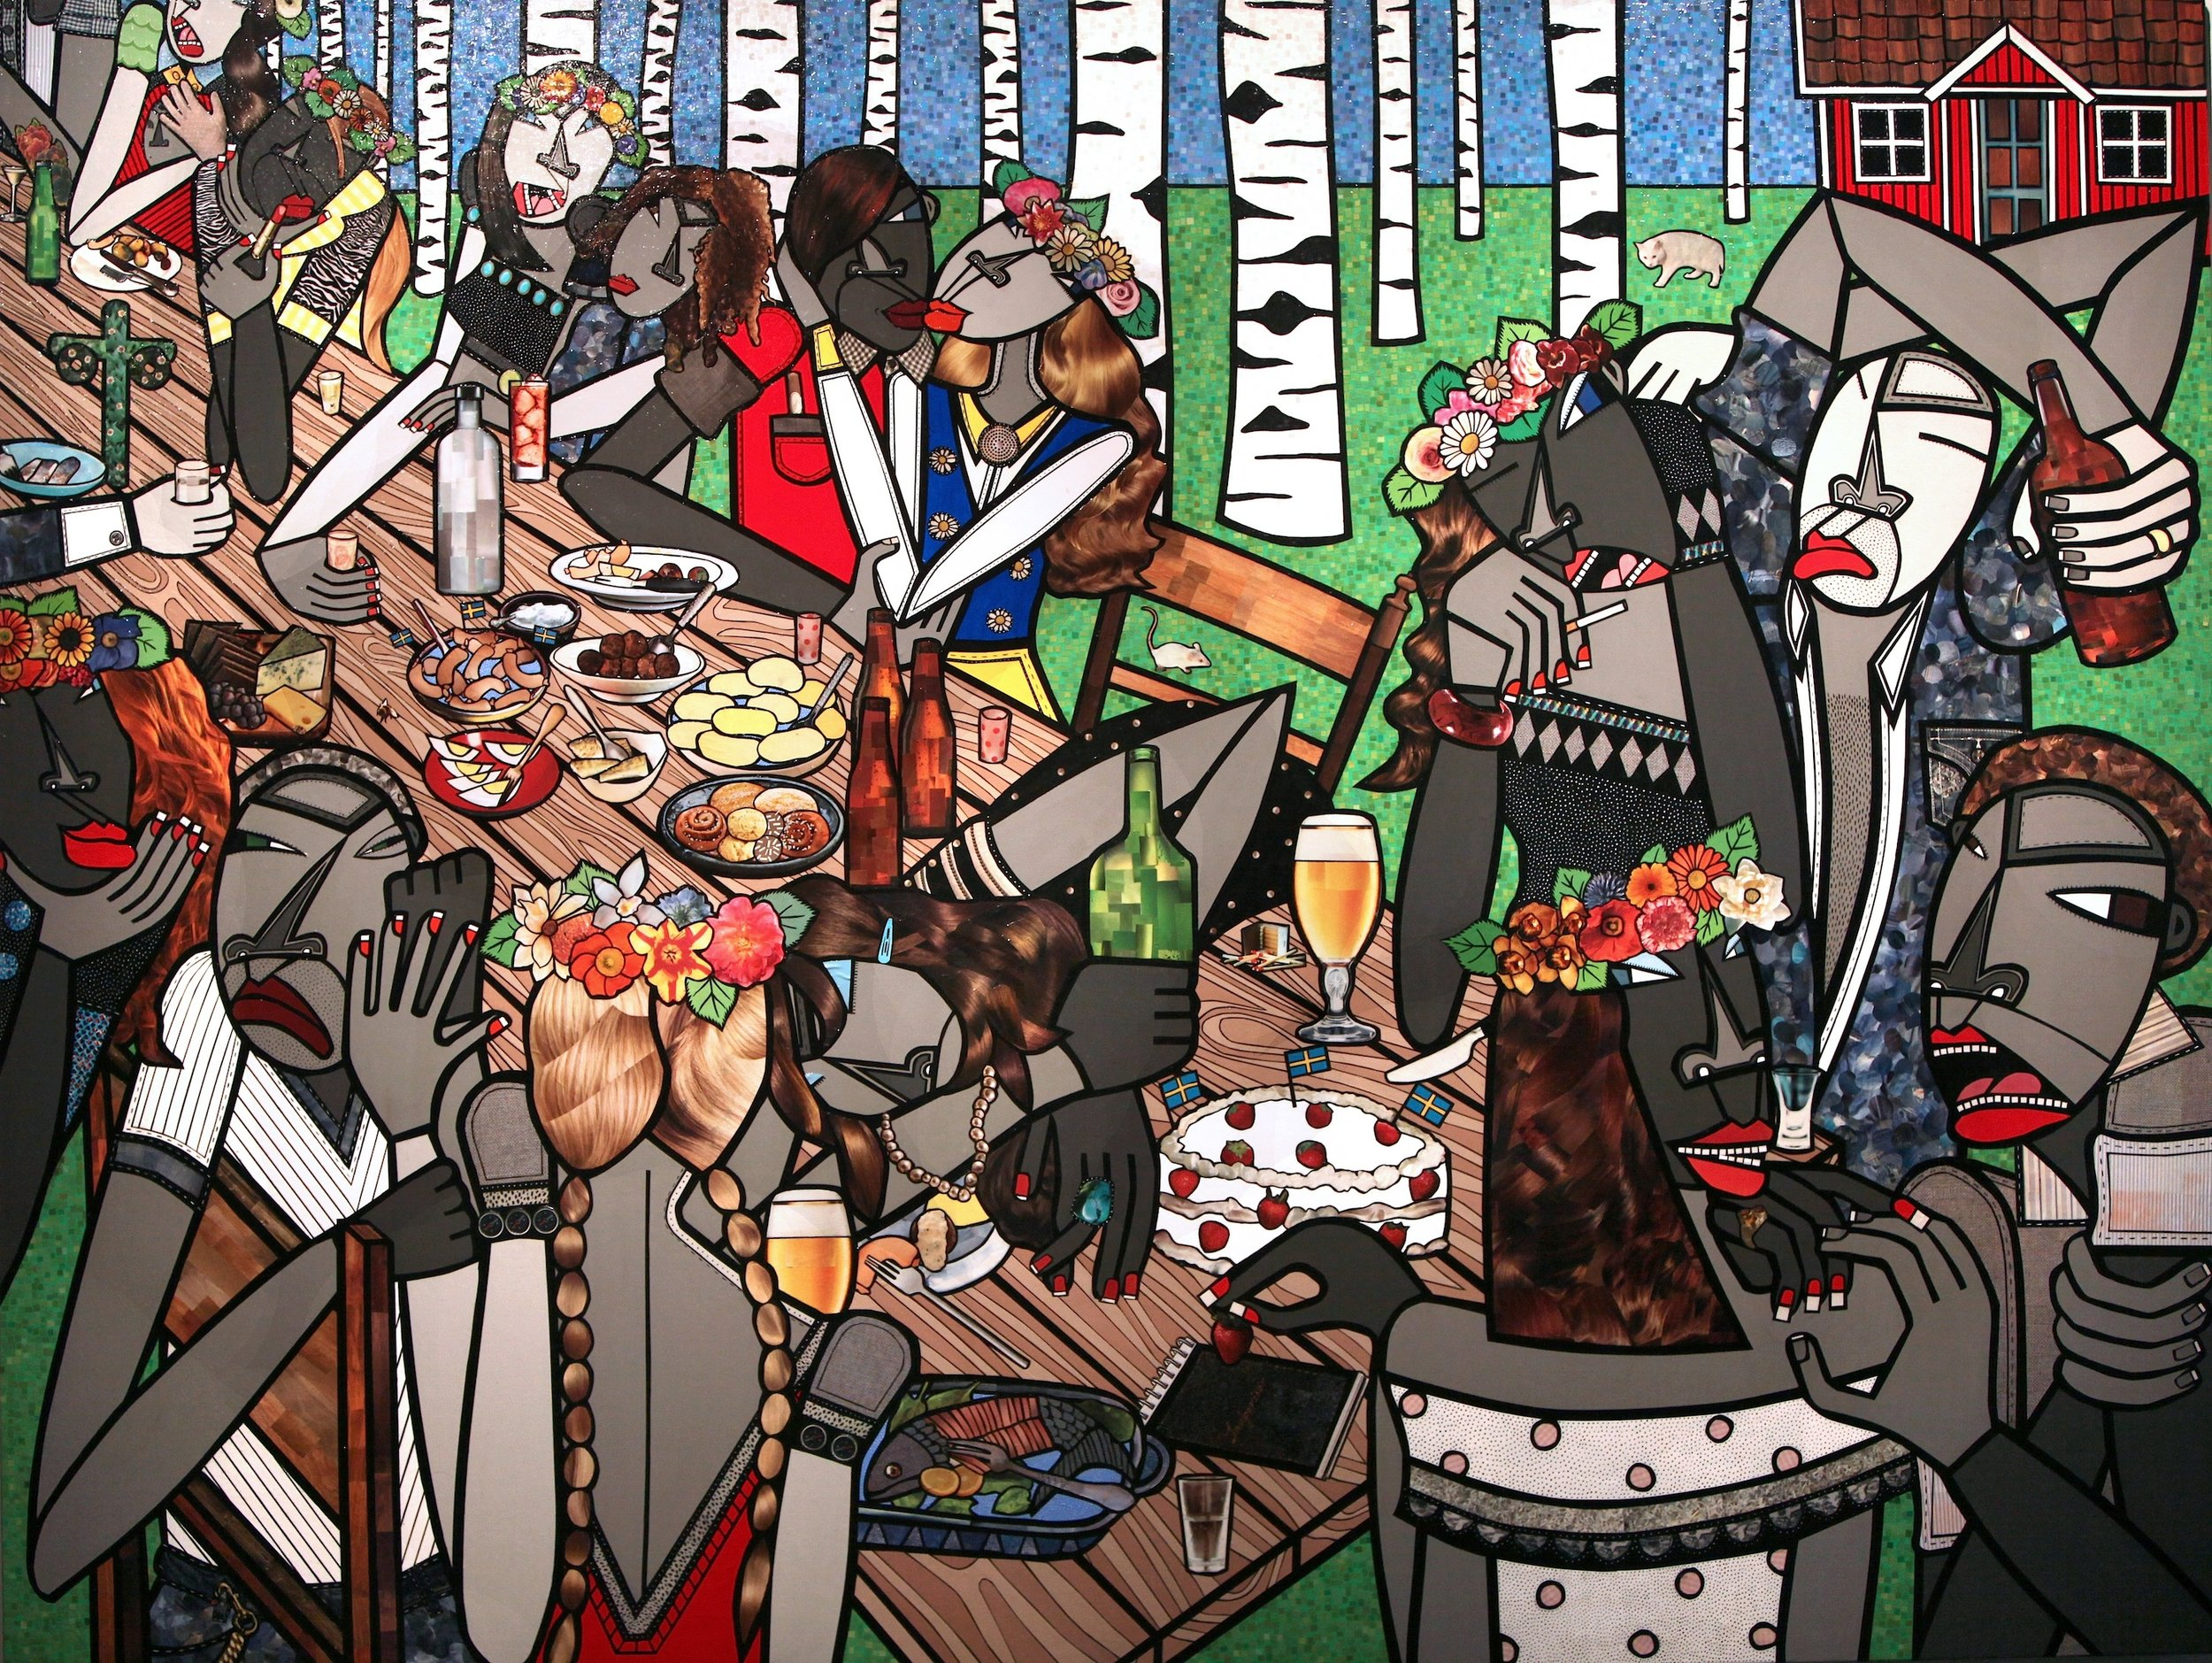 A Swedish Midsummer, acrylic and paper collage on canvas, 72 x 96 inches, 2009, private collection